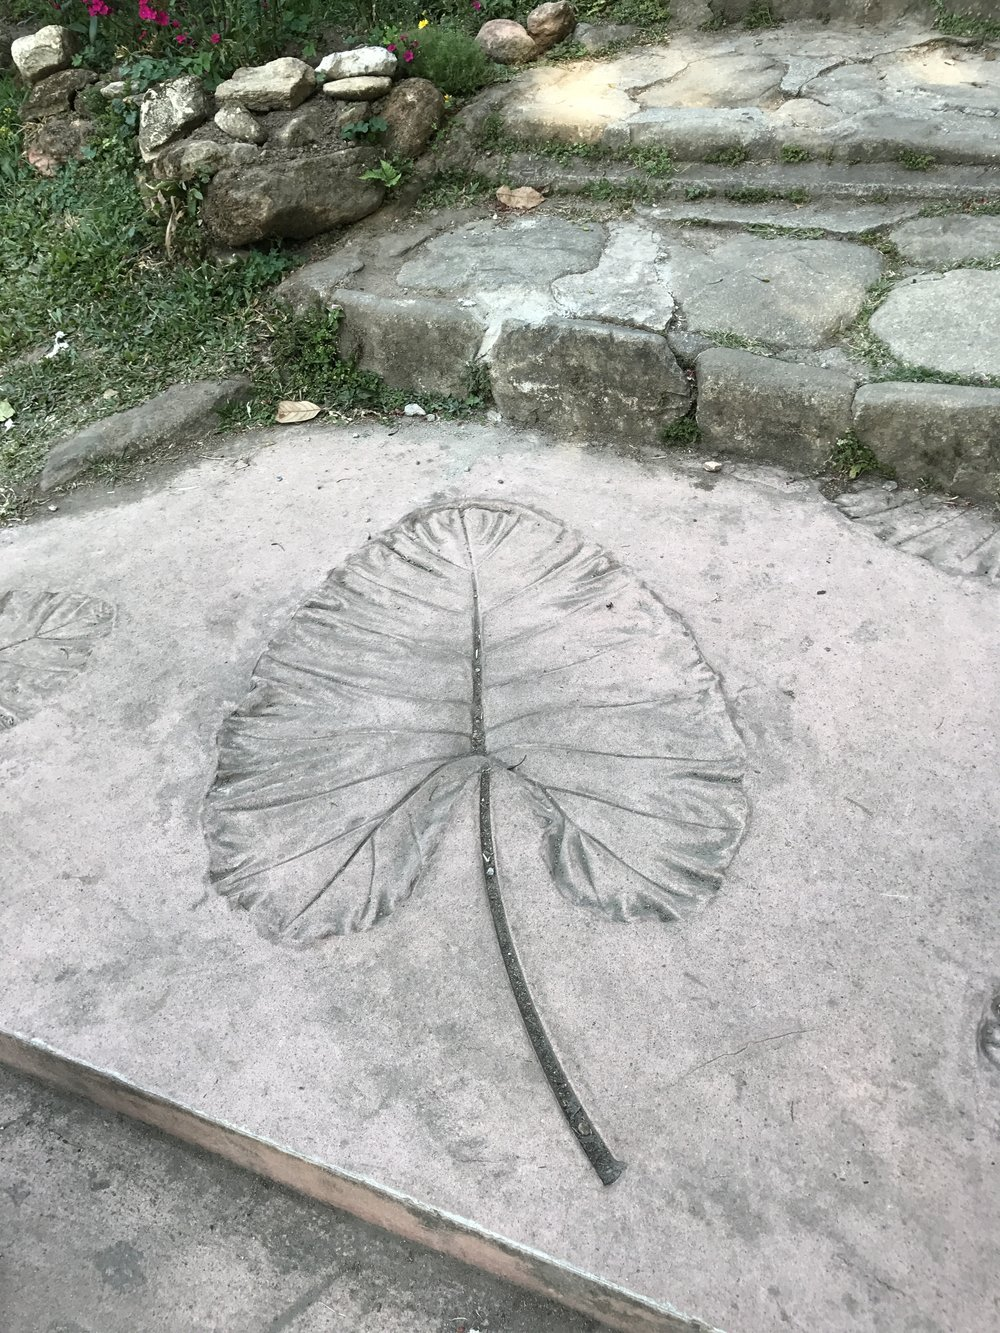 We loved the leaf prints and carvings in the concrete here in the king's garden and other places throughout SE Asia. This is a project we tried after a trip several years ago when I first discovered concrete pavers with leaf prints. We made several, and they were beautiful, and they broke! All of them! These look sturdy enough to withstand time and traffic!